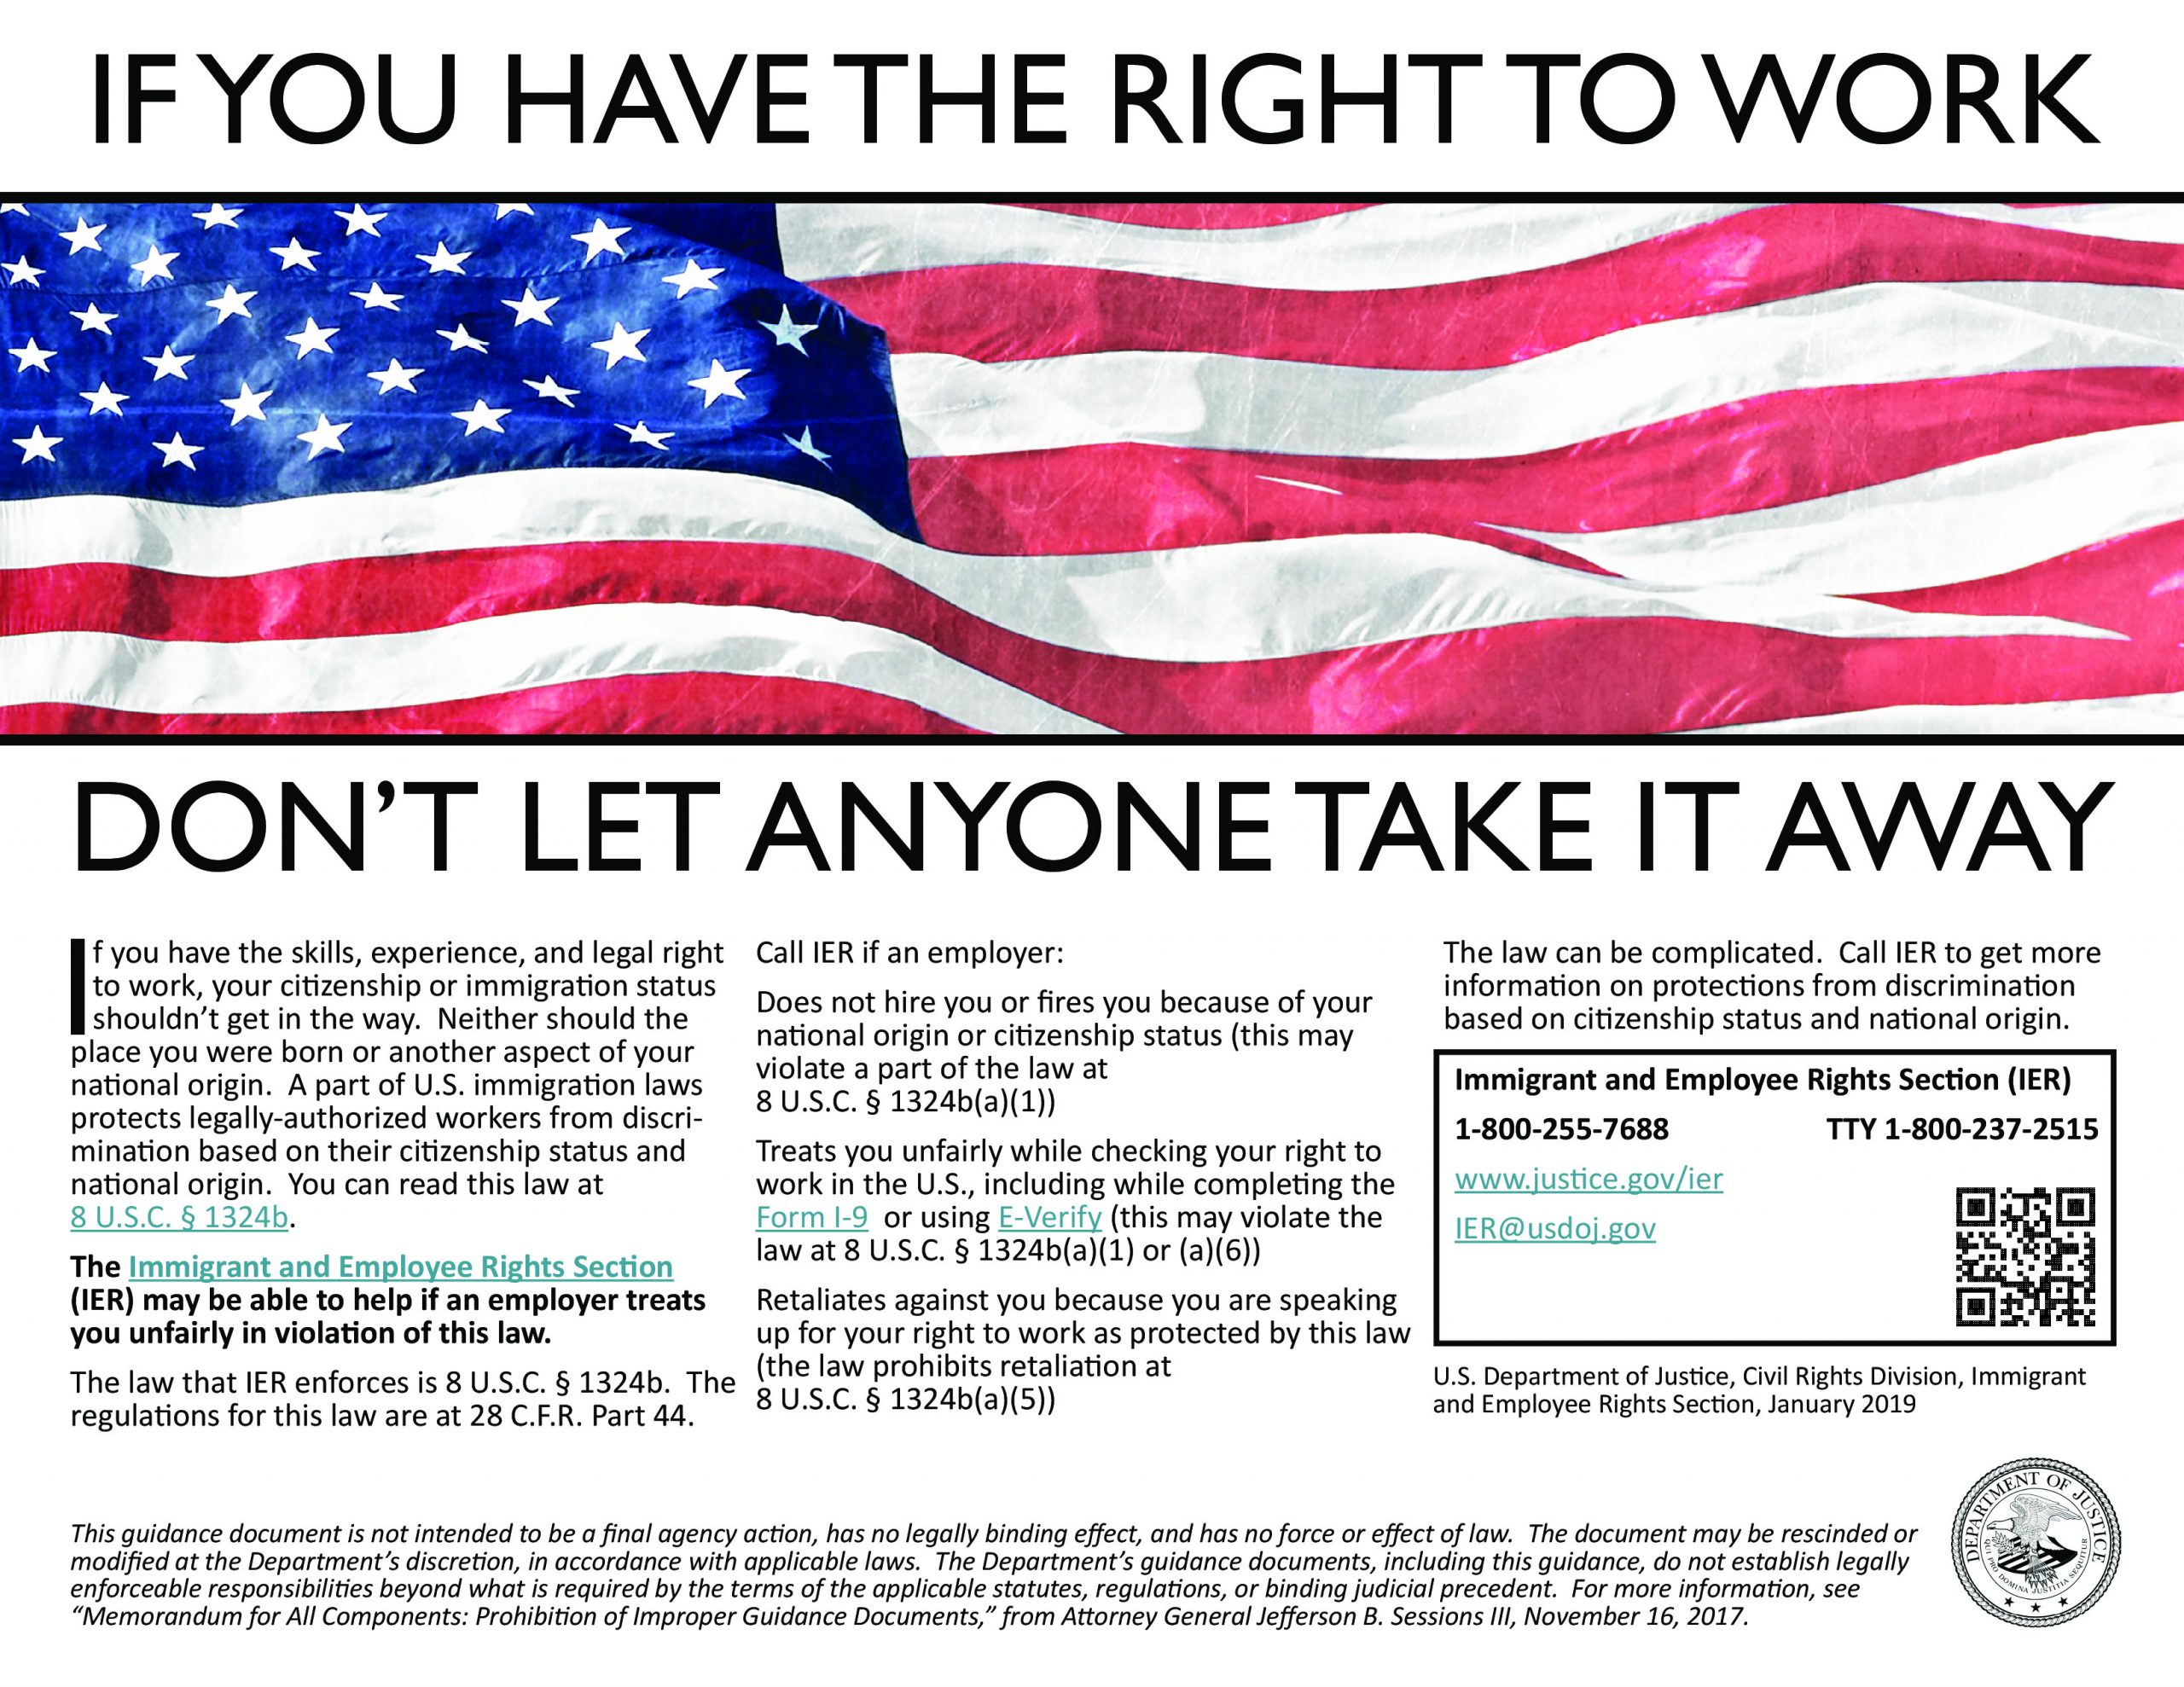 If you have the right to work don't let anyone take it away